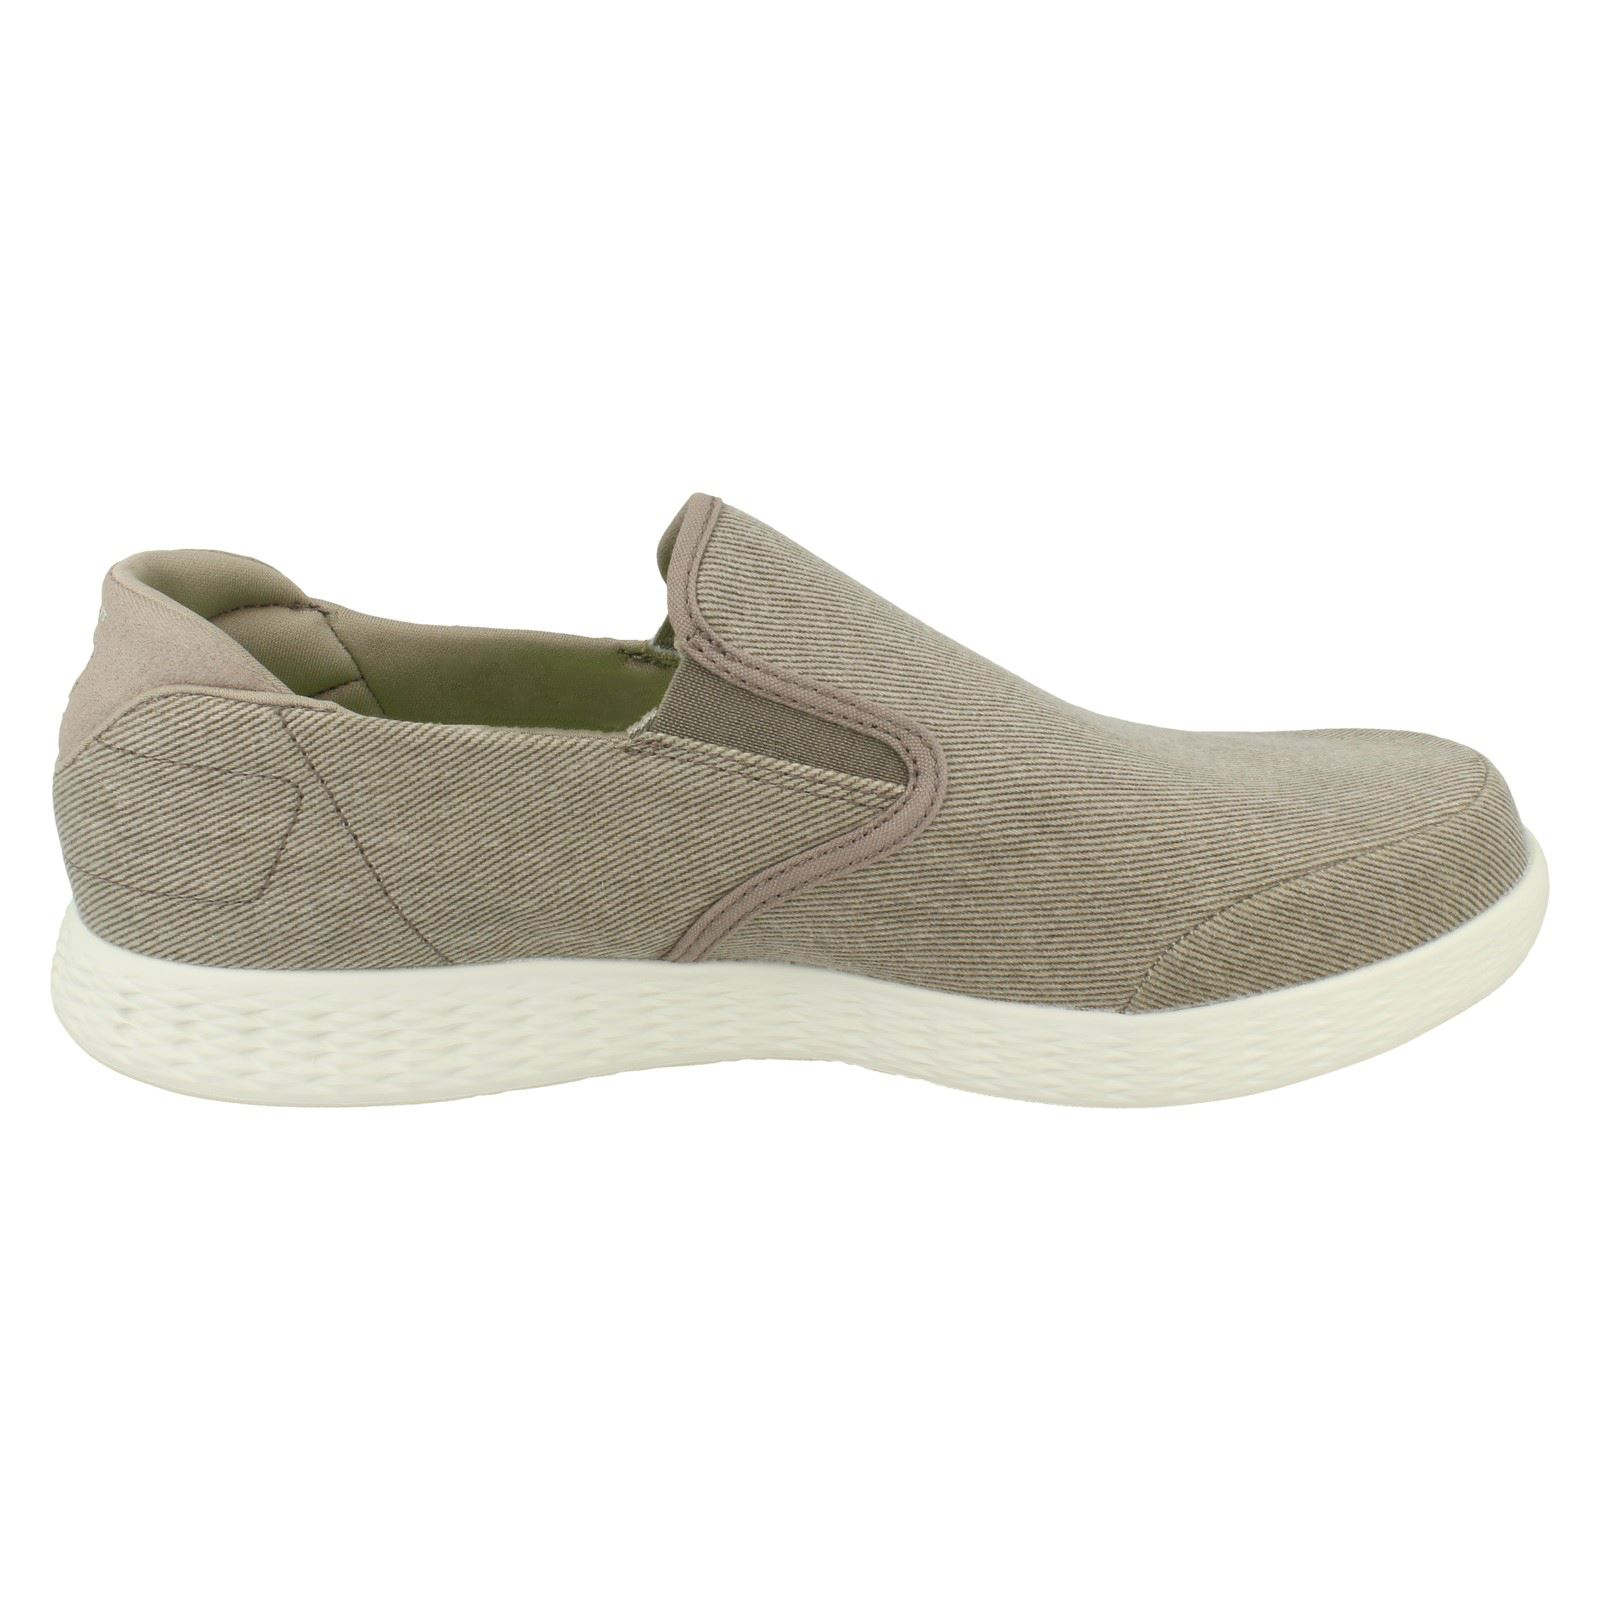 Men-Skechers-On-The-Go-Glide-Victorious-53781-Trainers thumbnail 3